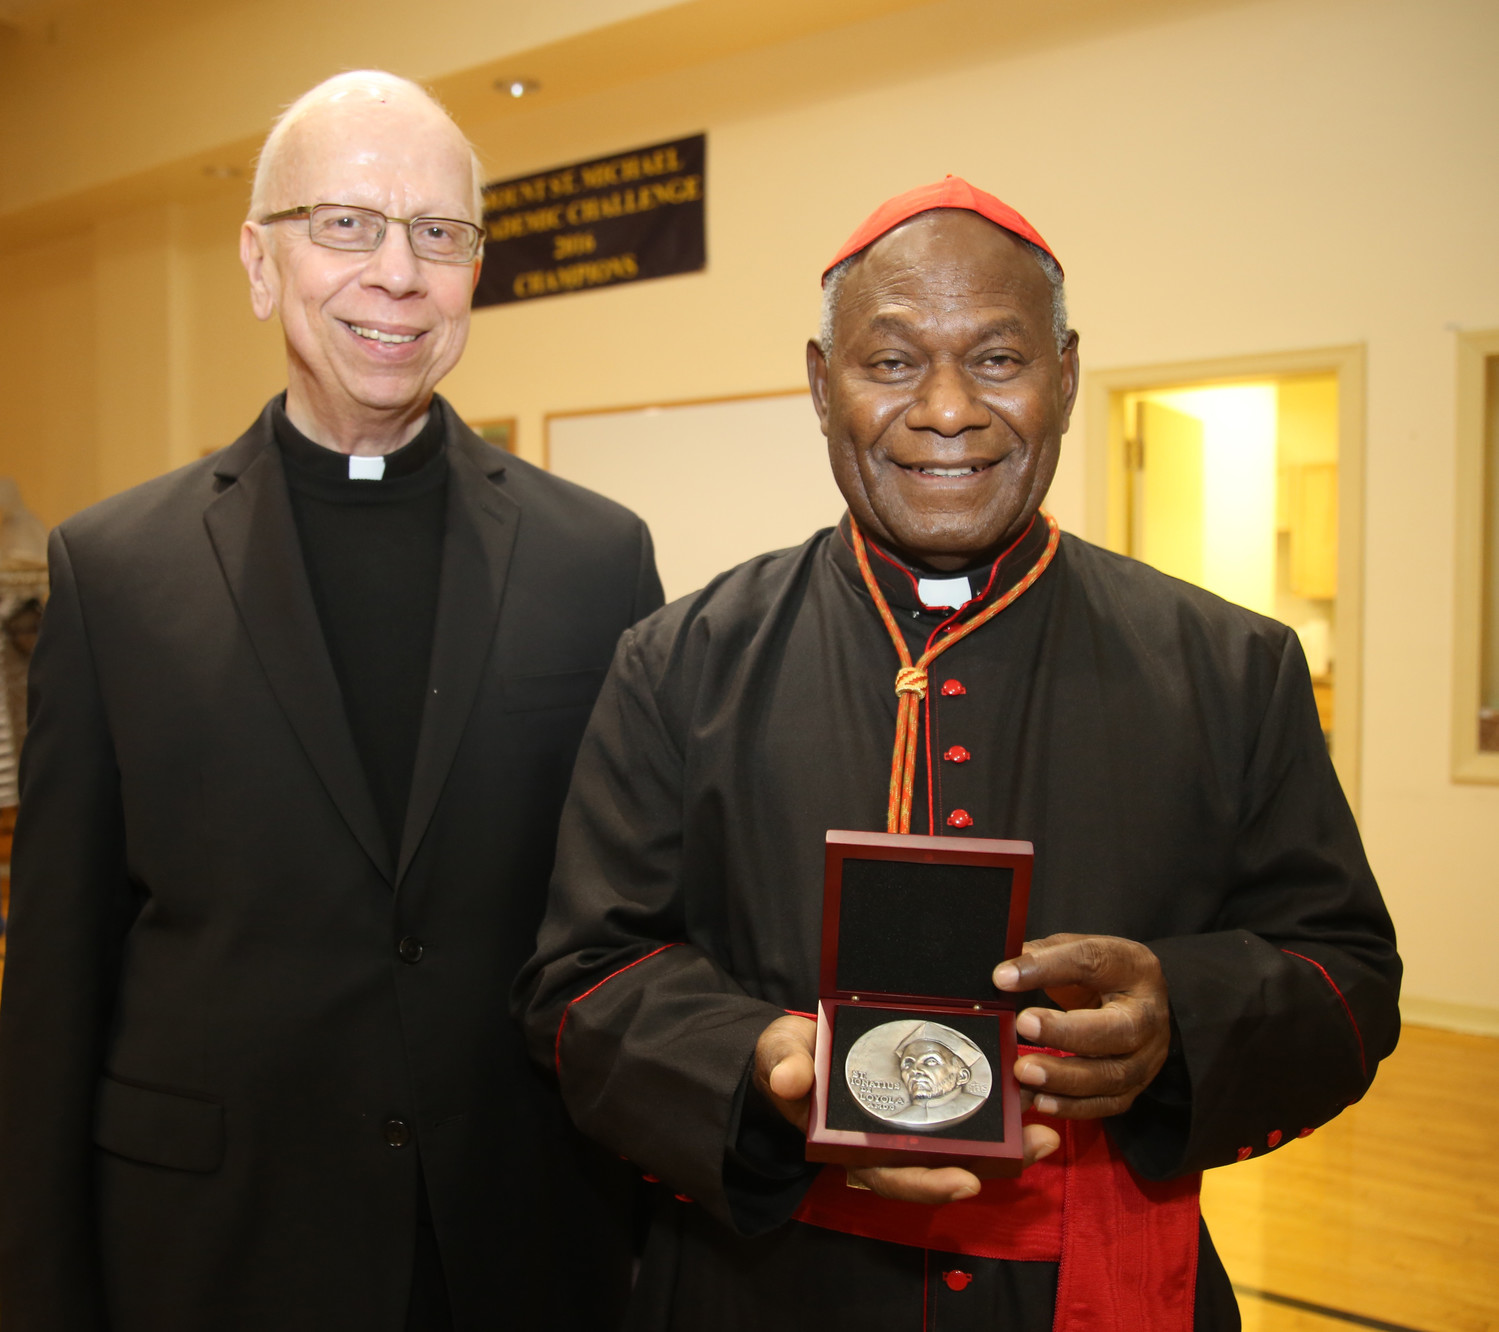 Cardinal Ribat displays the Loyola Medal after Mass with Father Dennis Yesalonia, S.J., the pastor of St. Ignatius Loyola.